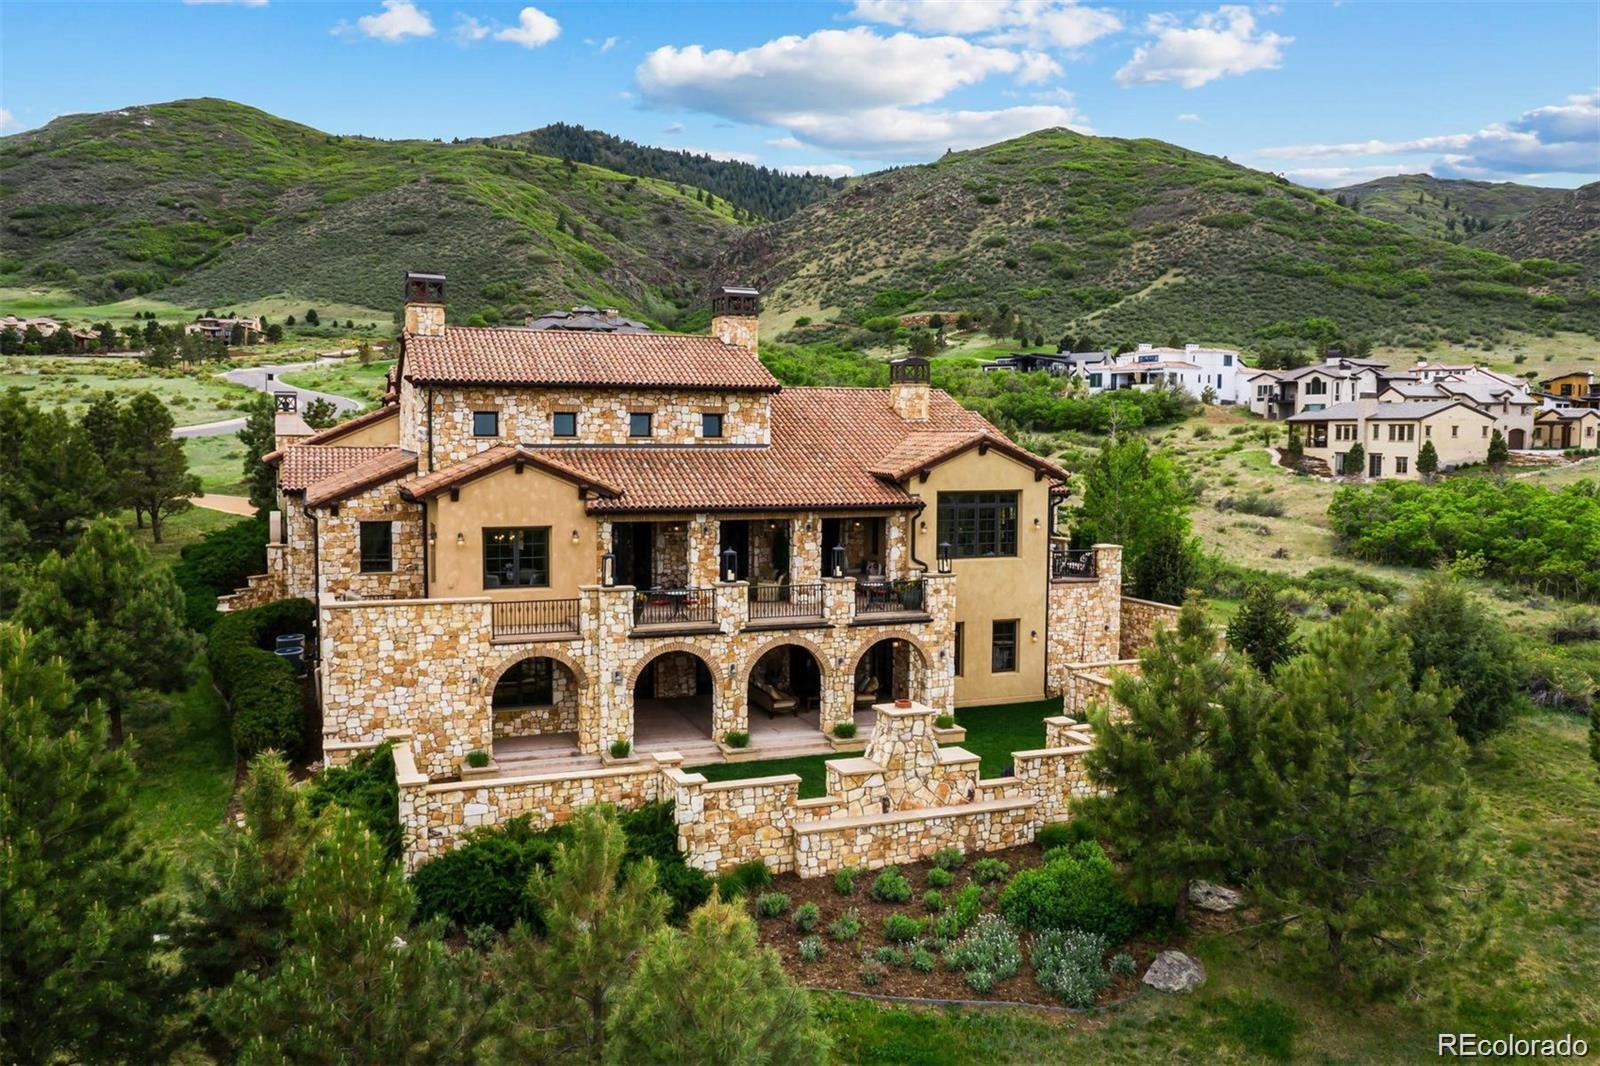 Spectacular CUSTOM ESTATE resting on RAVENNA GOLF Community's most impressive 18th TEE BOX HOME SITE! METICULOUSLY appointed to accommodate daily living in uncompromising Style & Luxury. Providing BREATHTAKING views of the mtn's, GOLF COURSE & clear to the DENVER SKYLINE!  It's an oasis for sophisticated entertaining; inviting PARADISE inside thru its landscape & numerous outdoor Stone Retreats. The interior echo's this ambiance through the architect's eye for QUALITY & DETAIL as seen in imprinted stonework & rare marble slabs. Only the FINEST MATERIALS have been incorporated as demonstrated in its EUROPEAN KITCHEN, old-world GUEST HOUSE & Venetian inspired WINE CELLAR & TASTING ROOM. Just a short drive to DTC and Downtown, yet seemingly worlds away. For those who prefer a unique escape to a SERENE, luxurious ESTATE AMONGST NATURE. This is the ultimate statement of Privacy & Prestige!